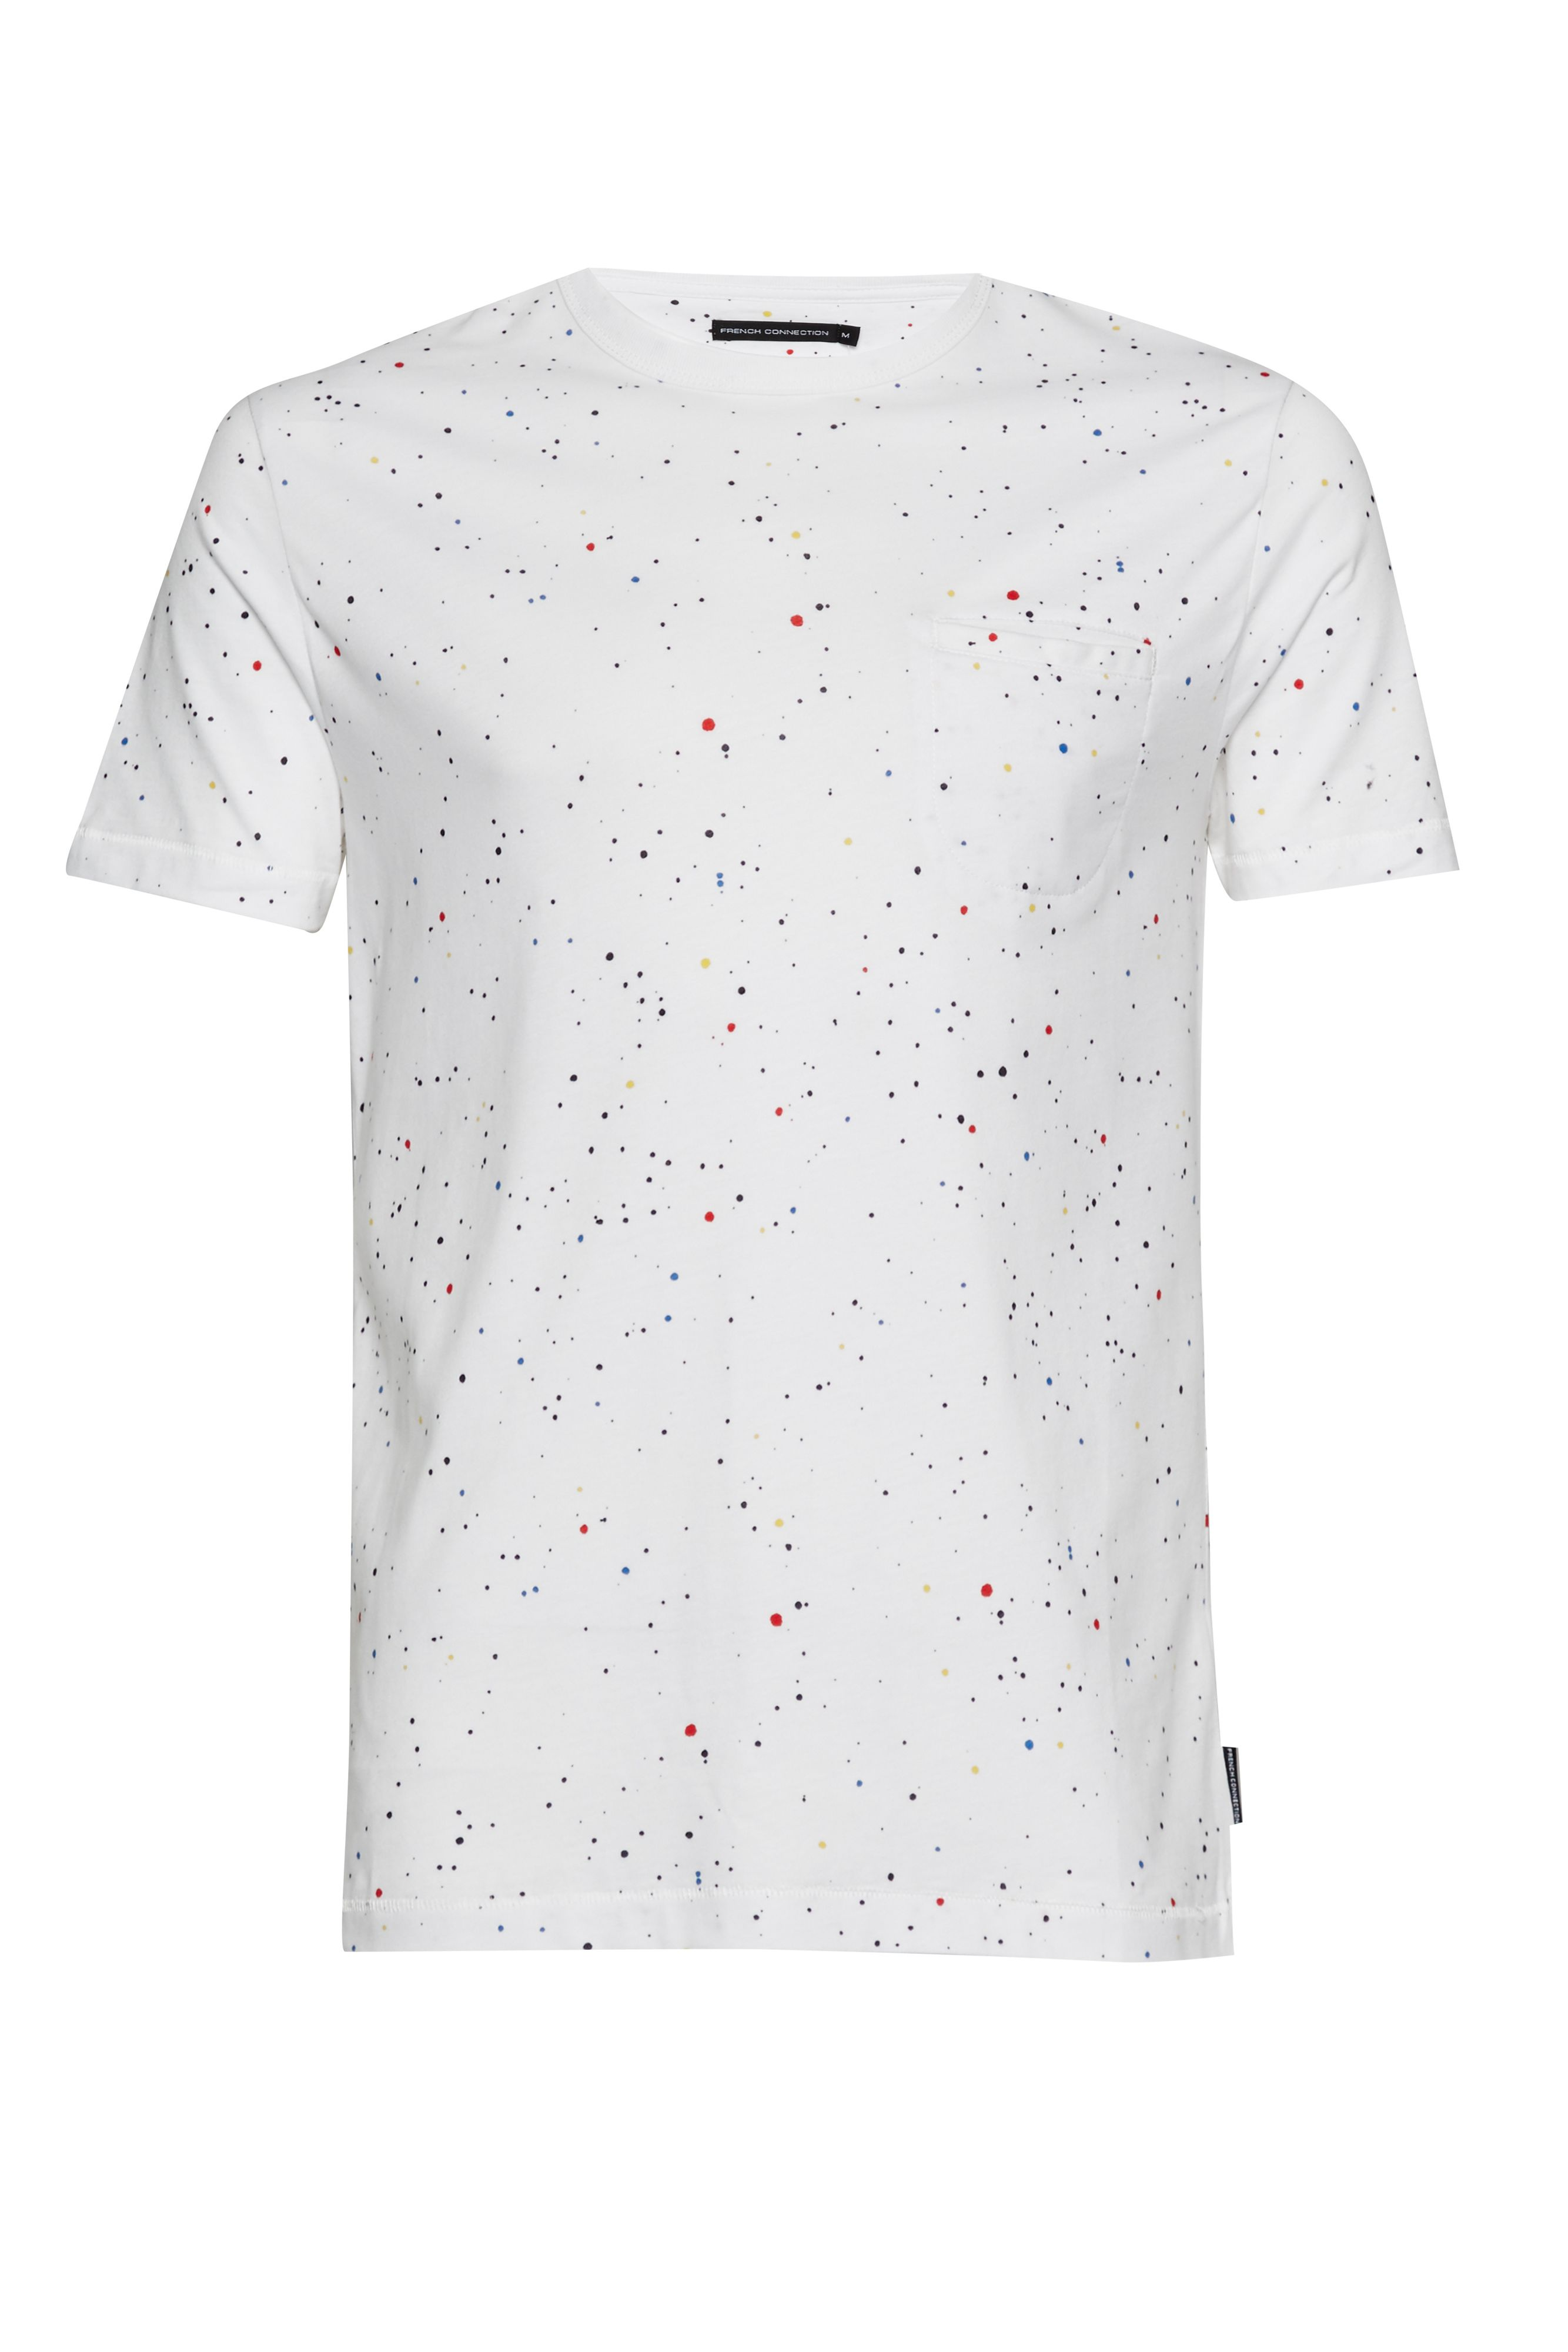 Men's French Connection Star Splatter Printed Jersey T-Shirt, White